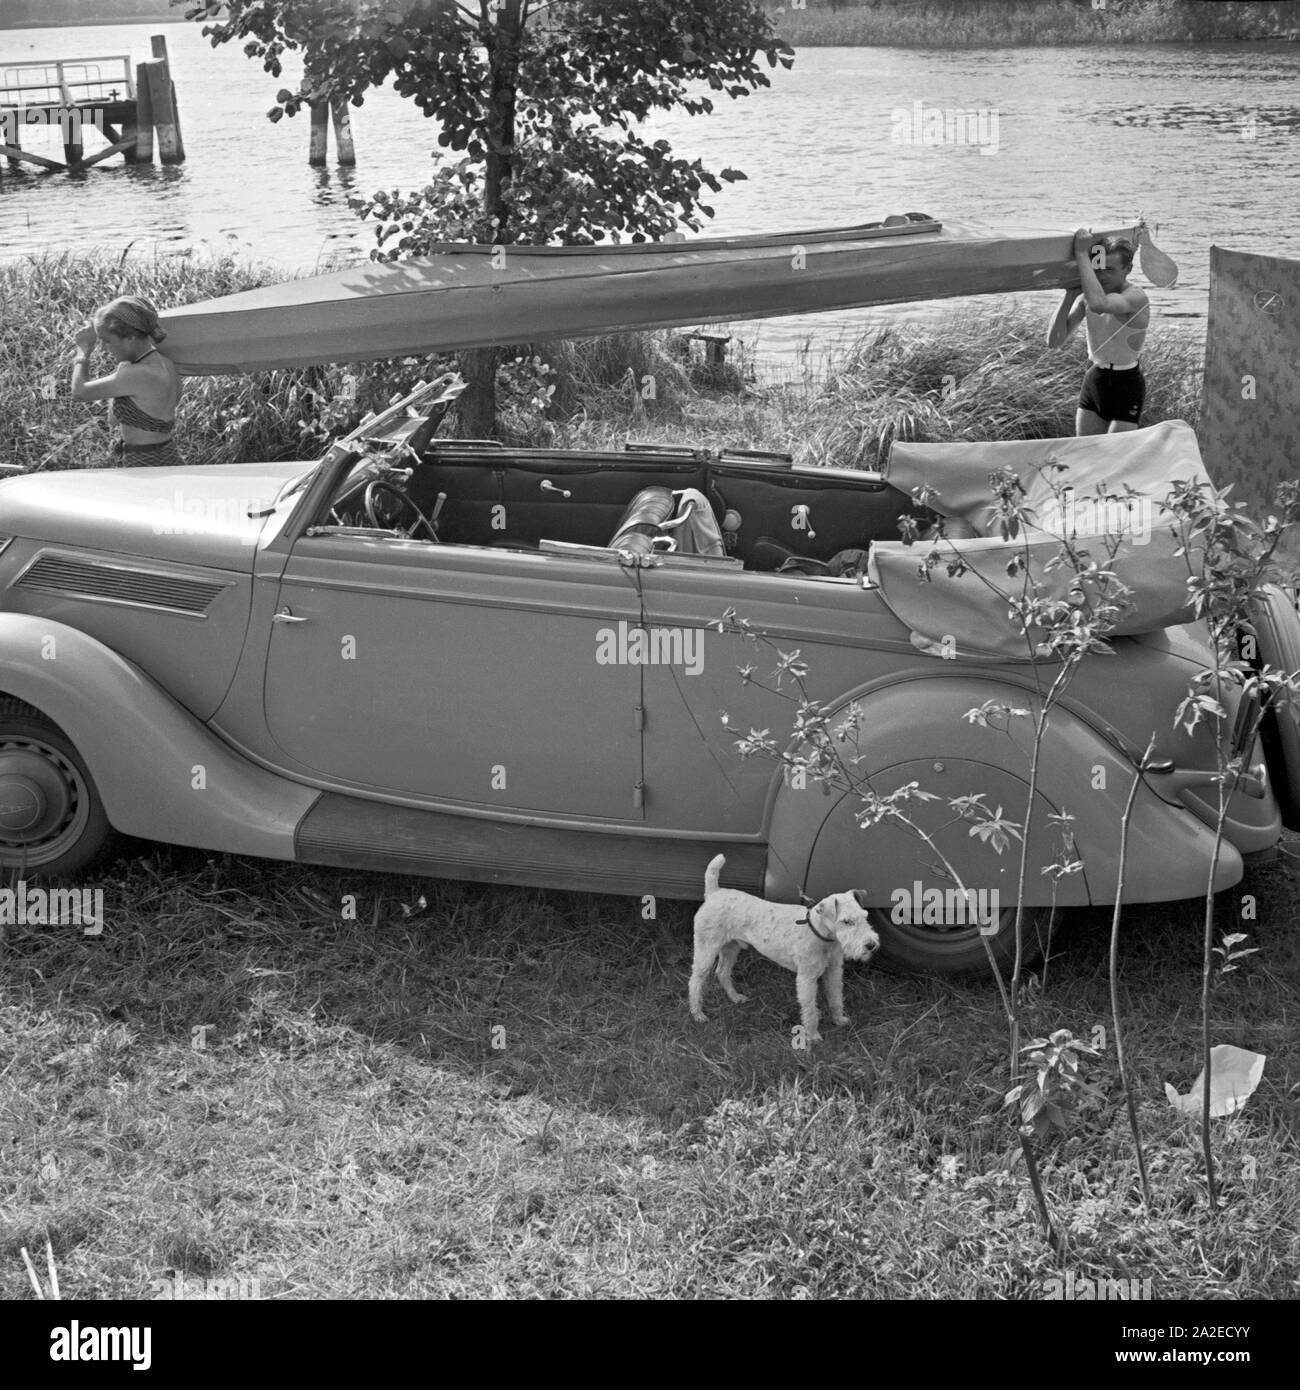 Ein Mann und eine Frau tragen ein Klepper Faltboot an einem Ford V8 Cabrio vorbei an Land, Deutschland 1930er Jahre. A man and a woman carrying a Klepper folding boat alongside a Ford V8 convertible on the shore, Germany 1930s. Stock Photo